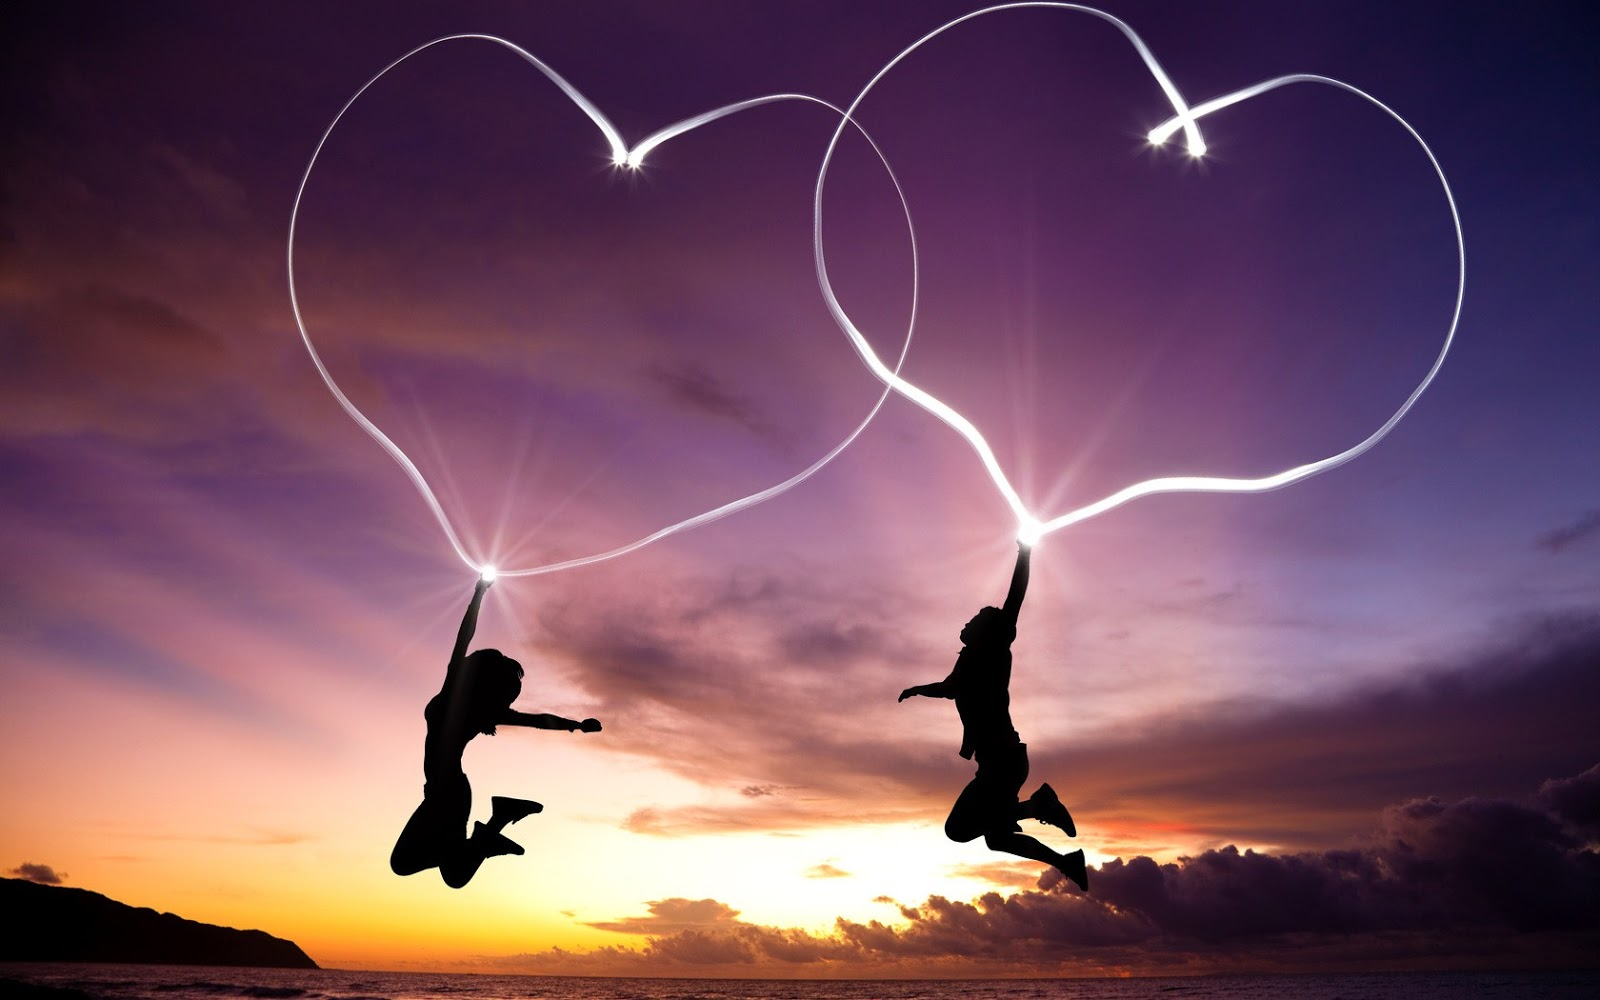 Love wallpapers free hd wallpapers romantic wallpapers - Love wallpaper hd ...